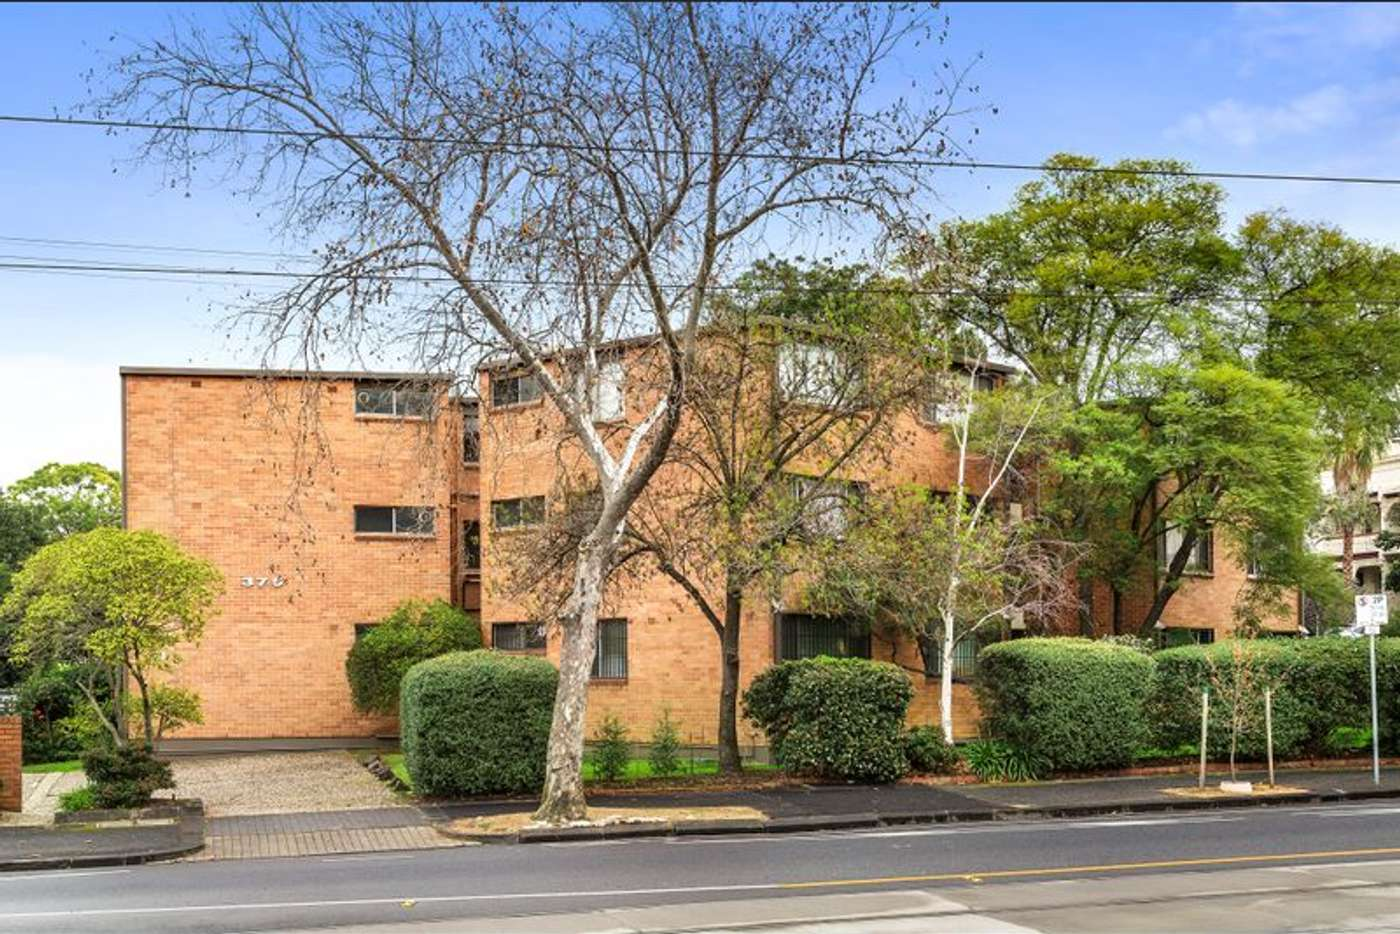 Main view of Homely apartment listing, 12/375 Abbotsford Street, West Melbourne VIC 3003